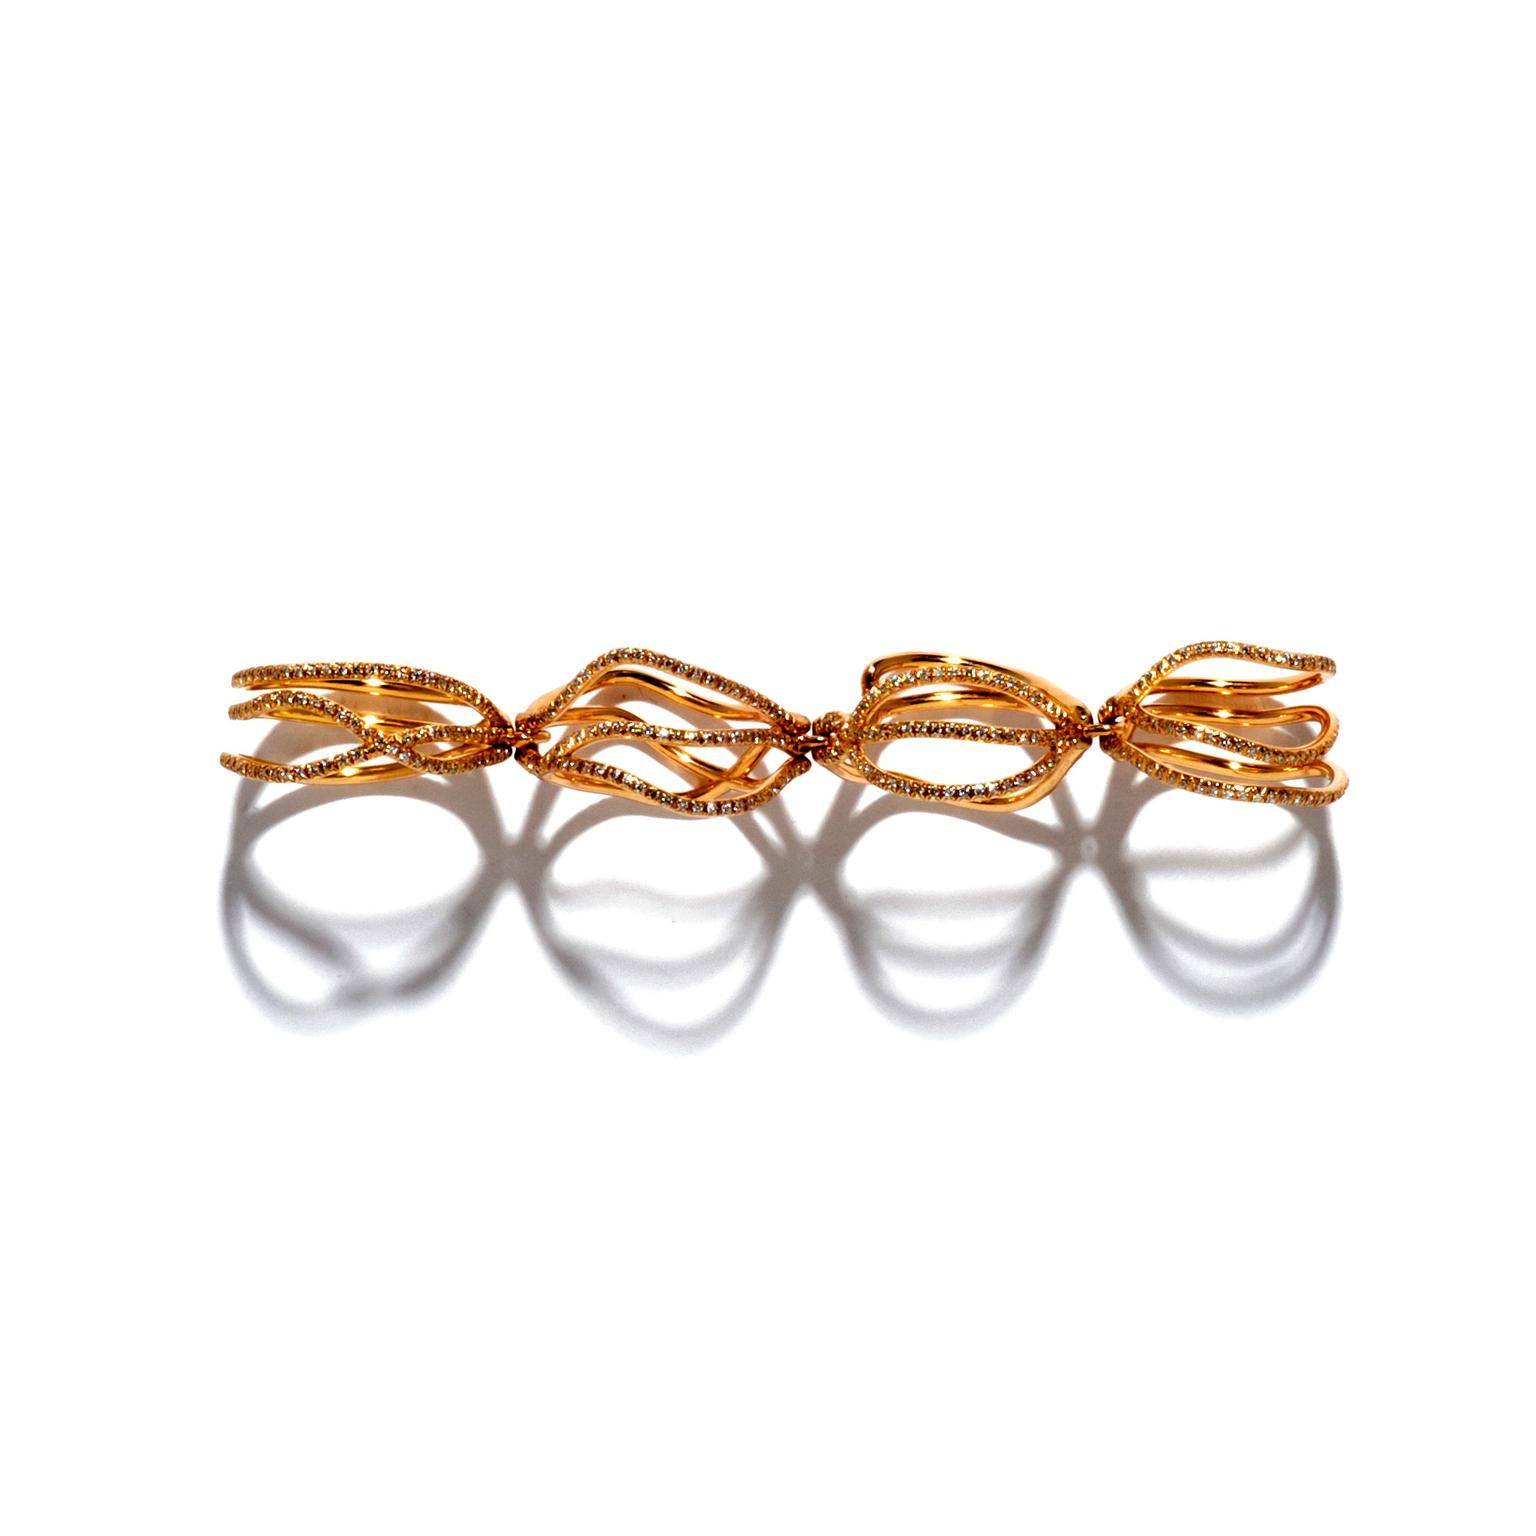 Repossi pink gold ring